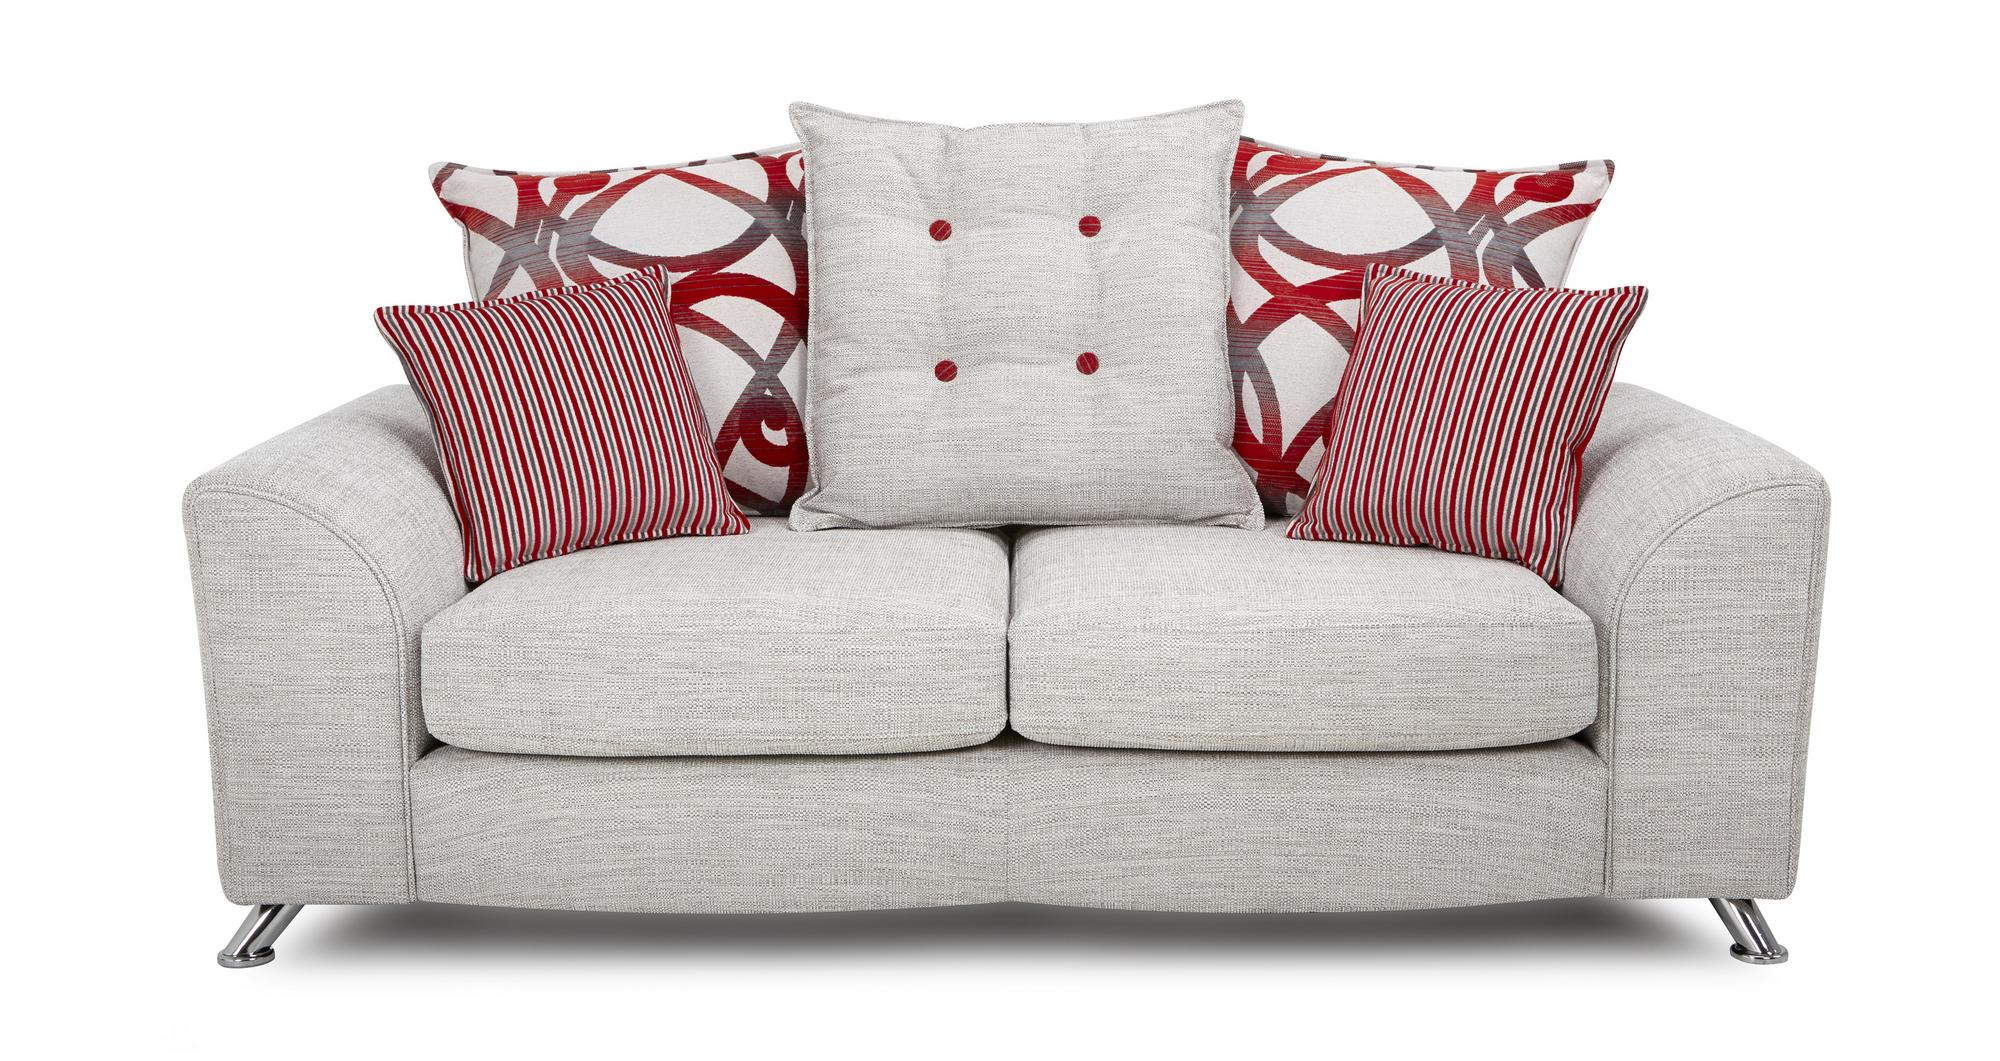 DFS Circuit Red Combination 2 Seater Sofa 2 X Stripe